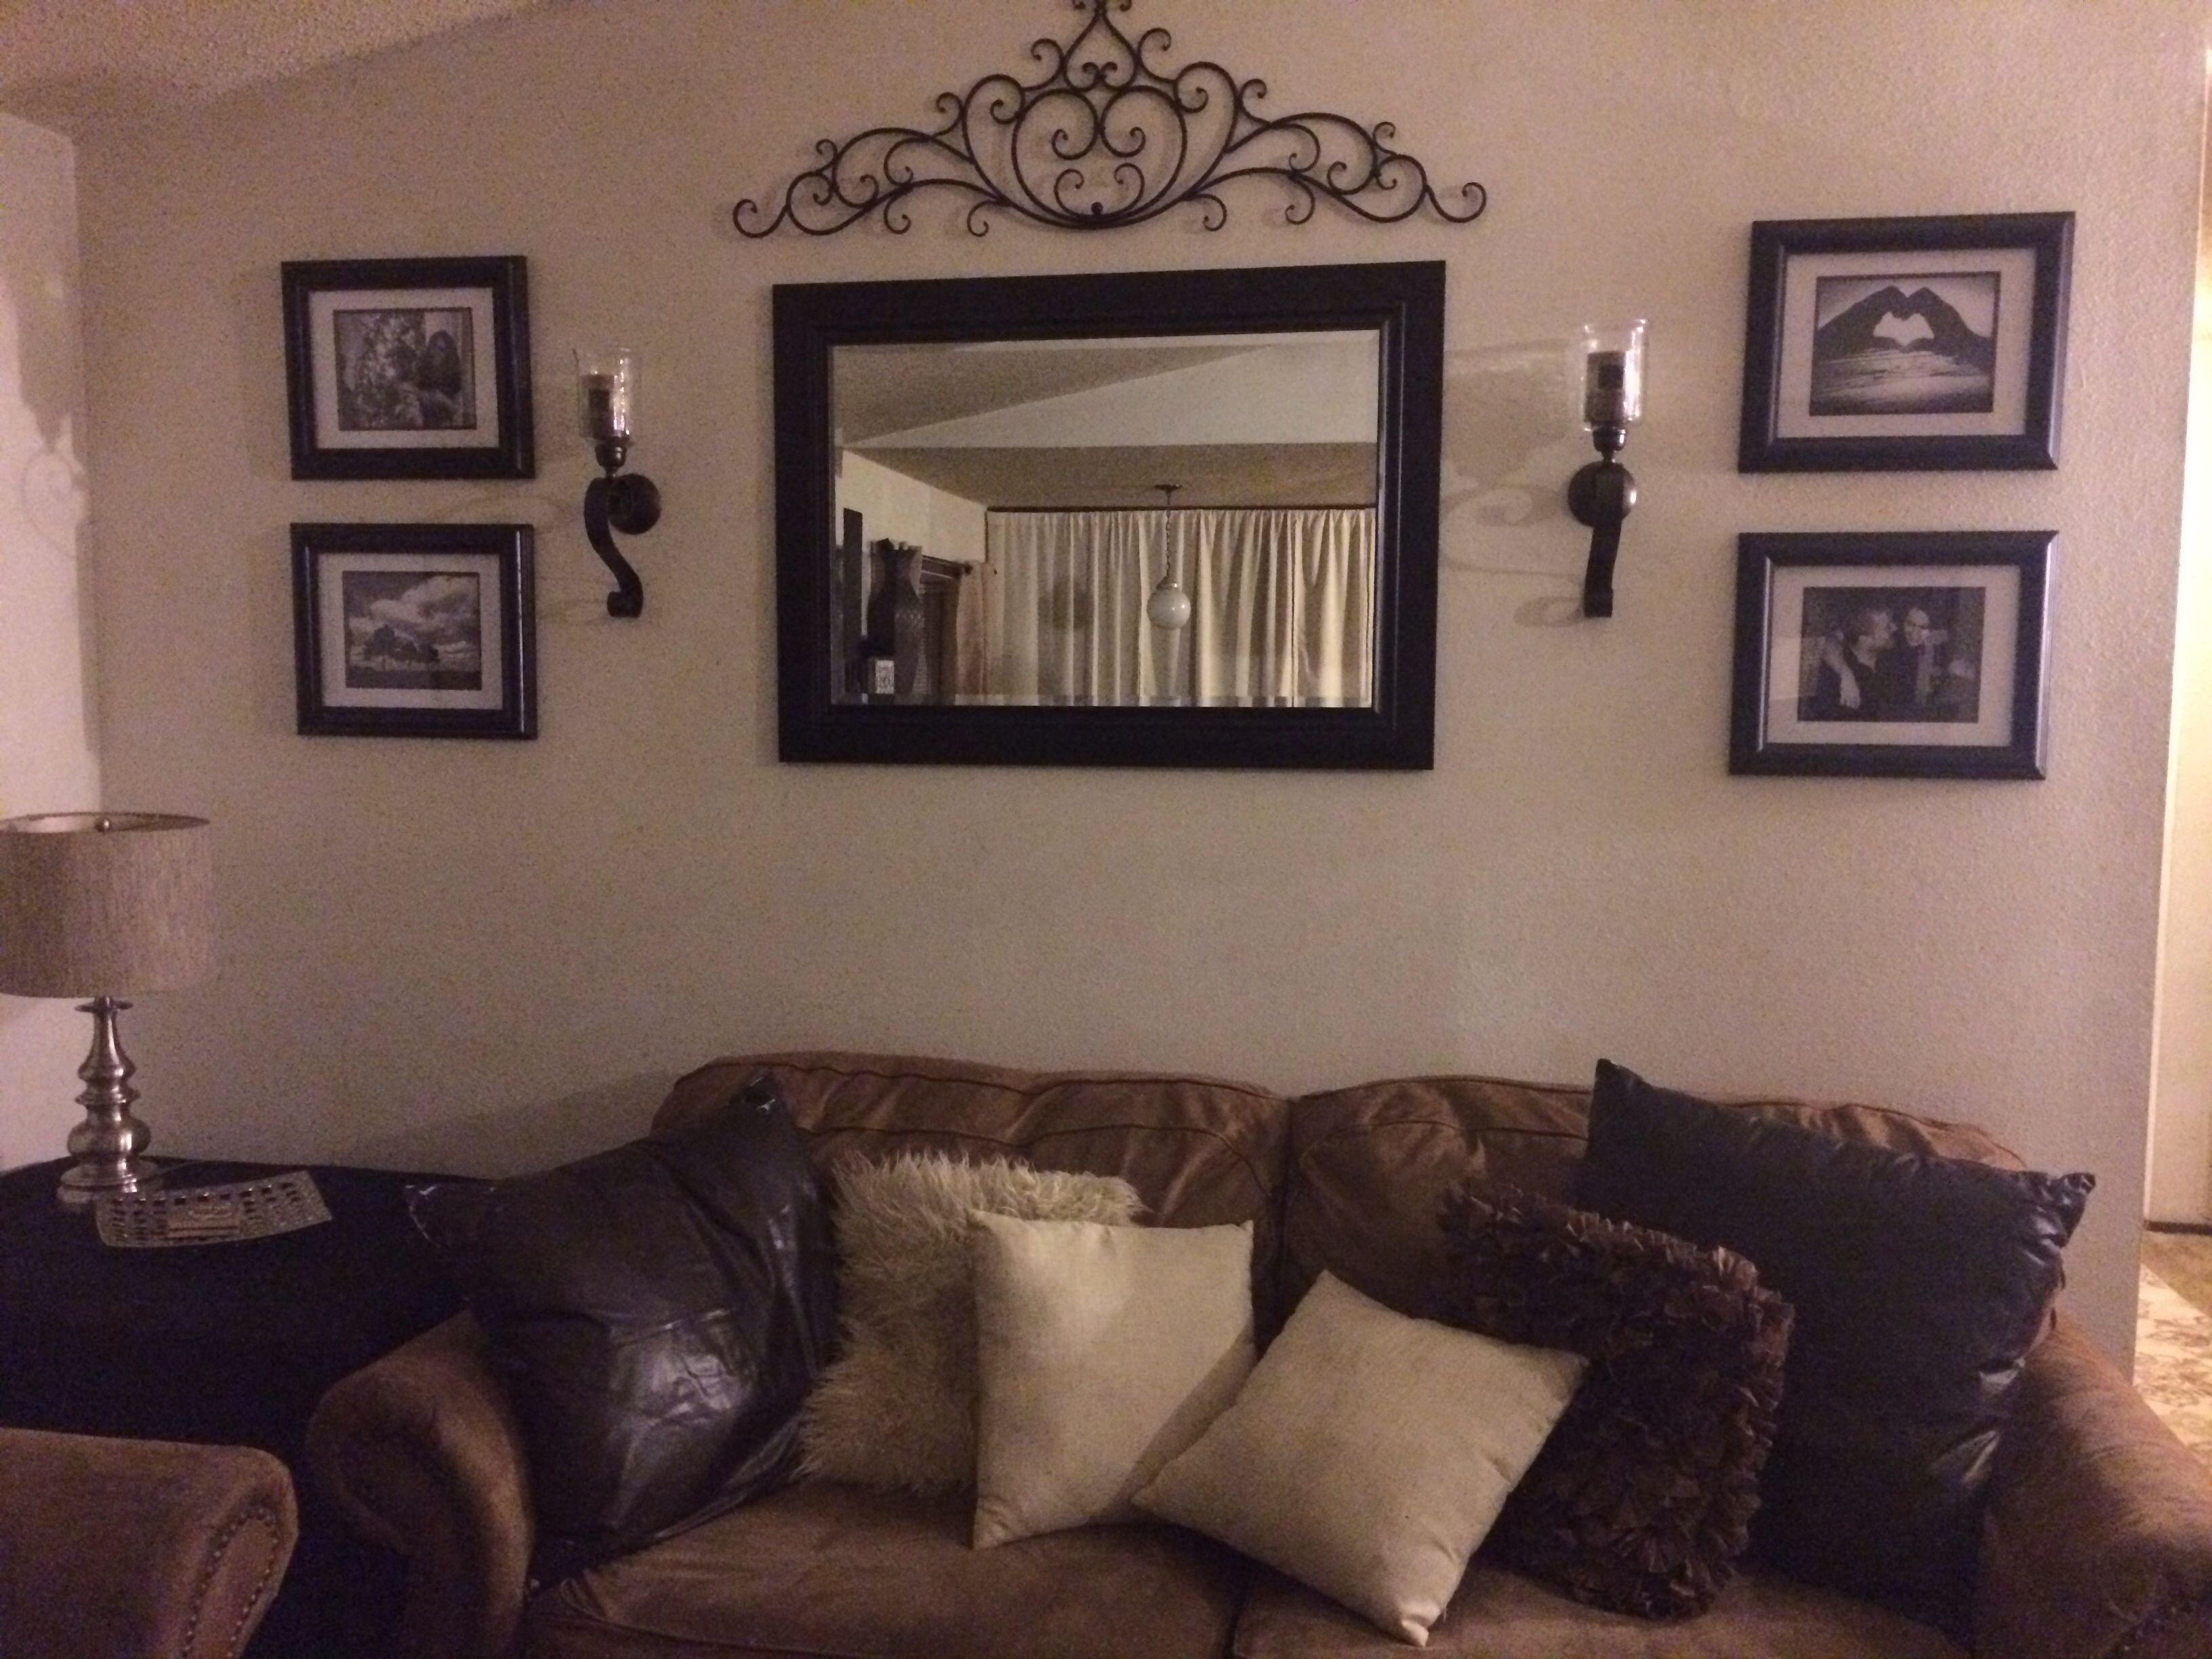 10 Famous Wall Decorating Ideas Living Room behind couch wall in living room mirror frame sconces and metal 1 2021